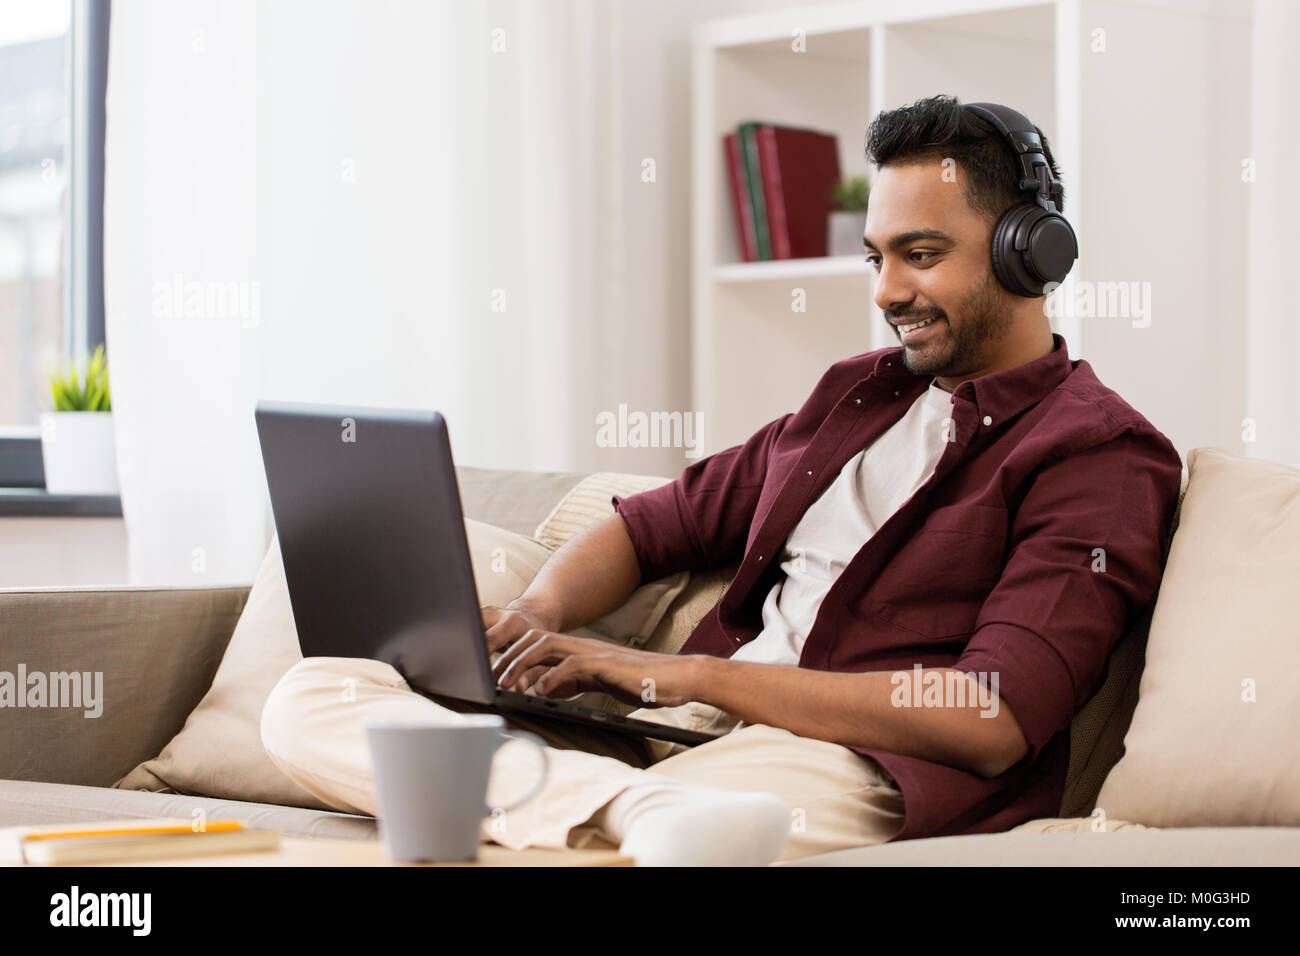 man in headphones with laptop listening to music - Stock Image